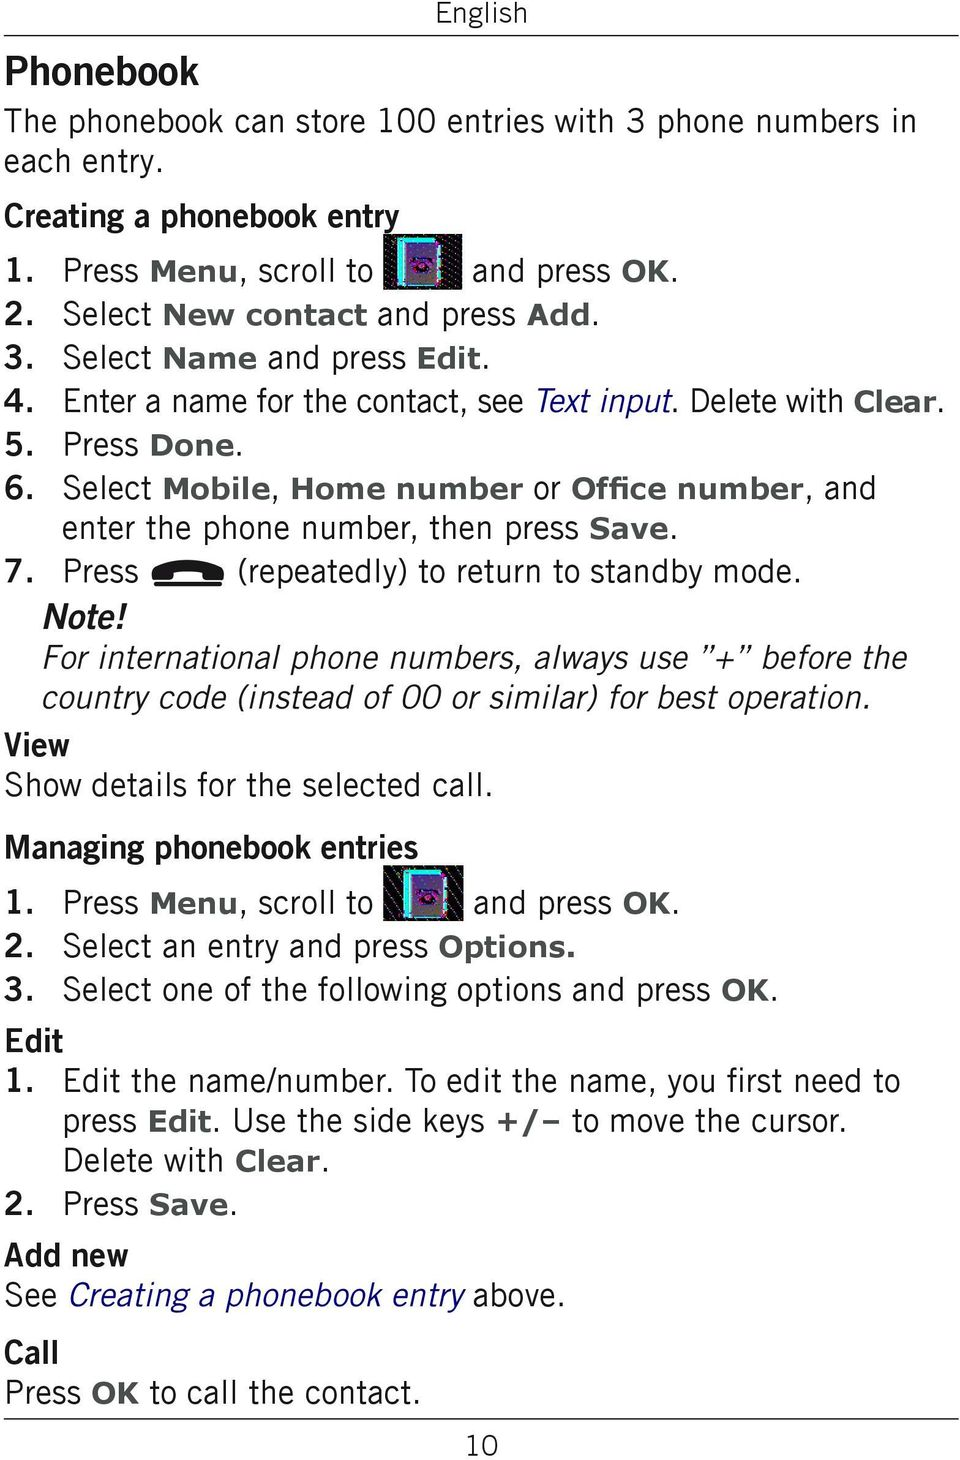 Press L (repeatedly) to return to standby mode. Note! For international phone numbers, always use + before the country code (instead of 00 or similar) for best operation.